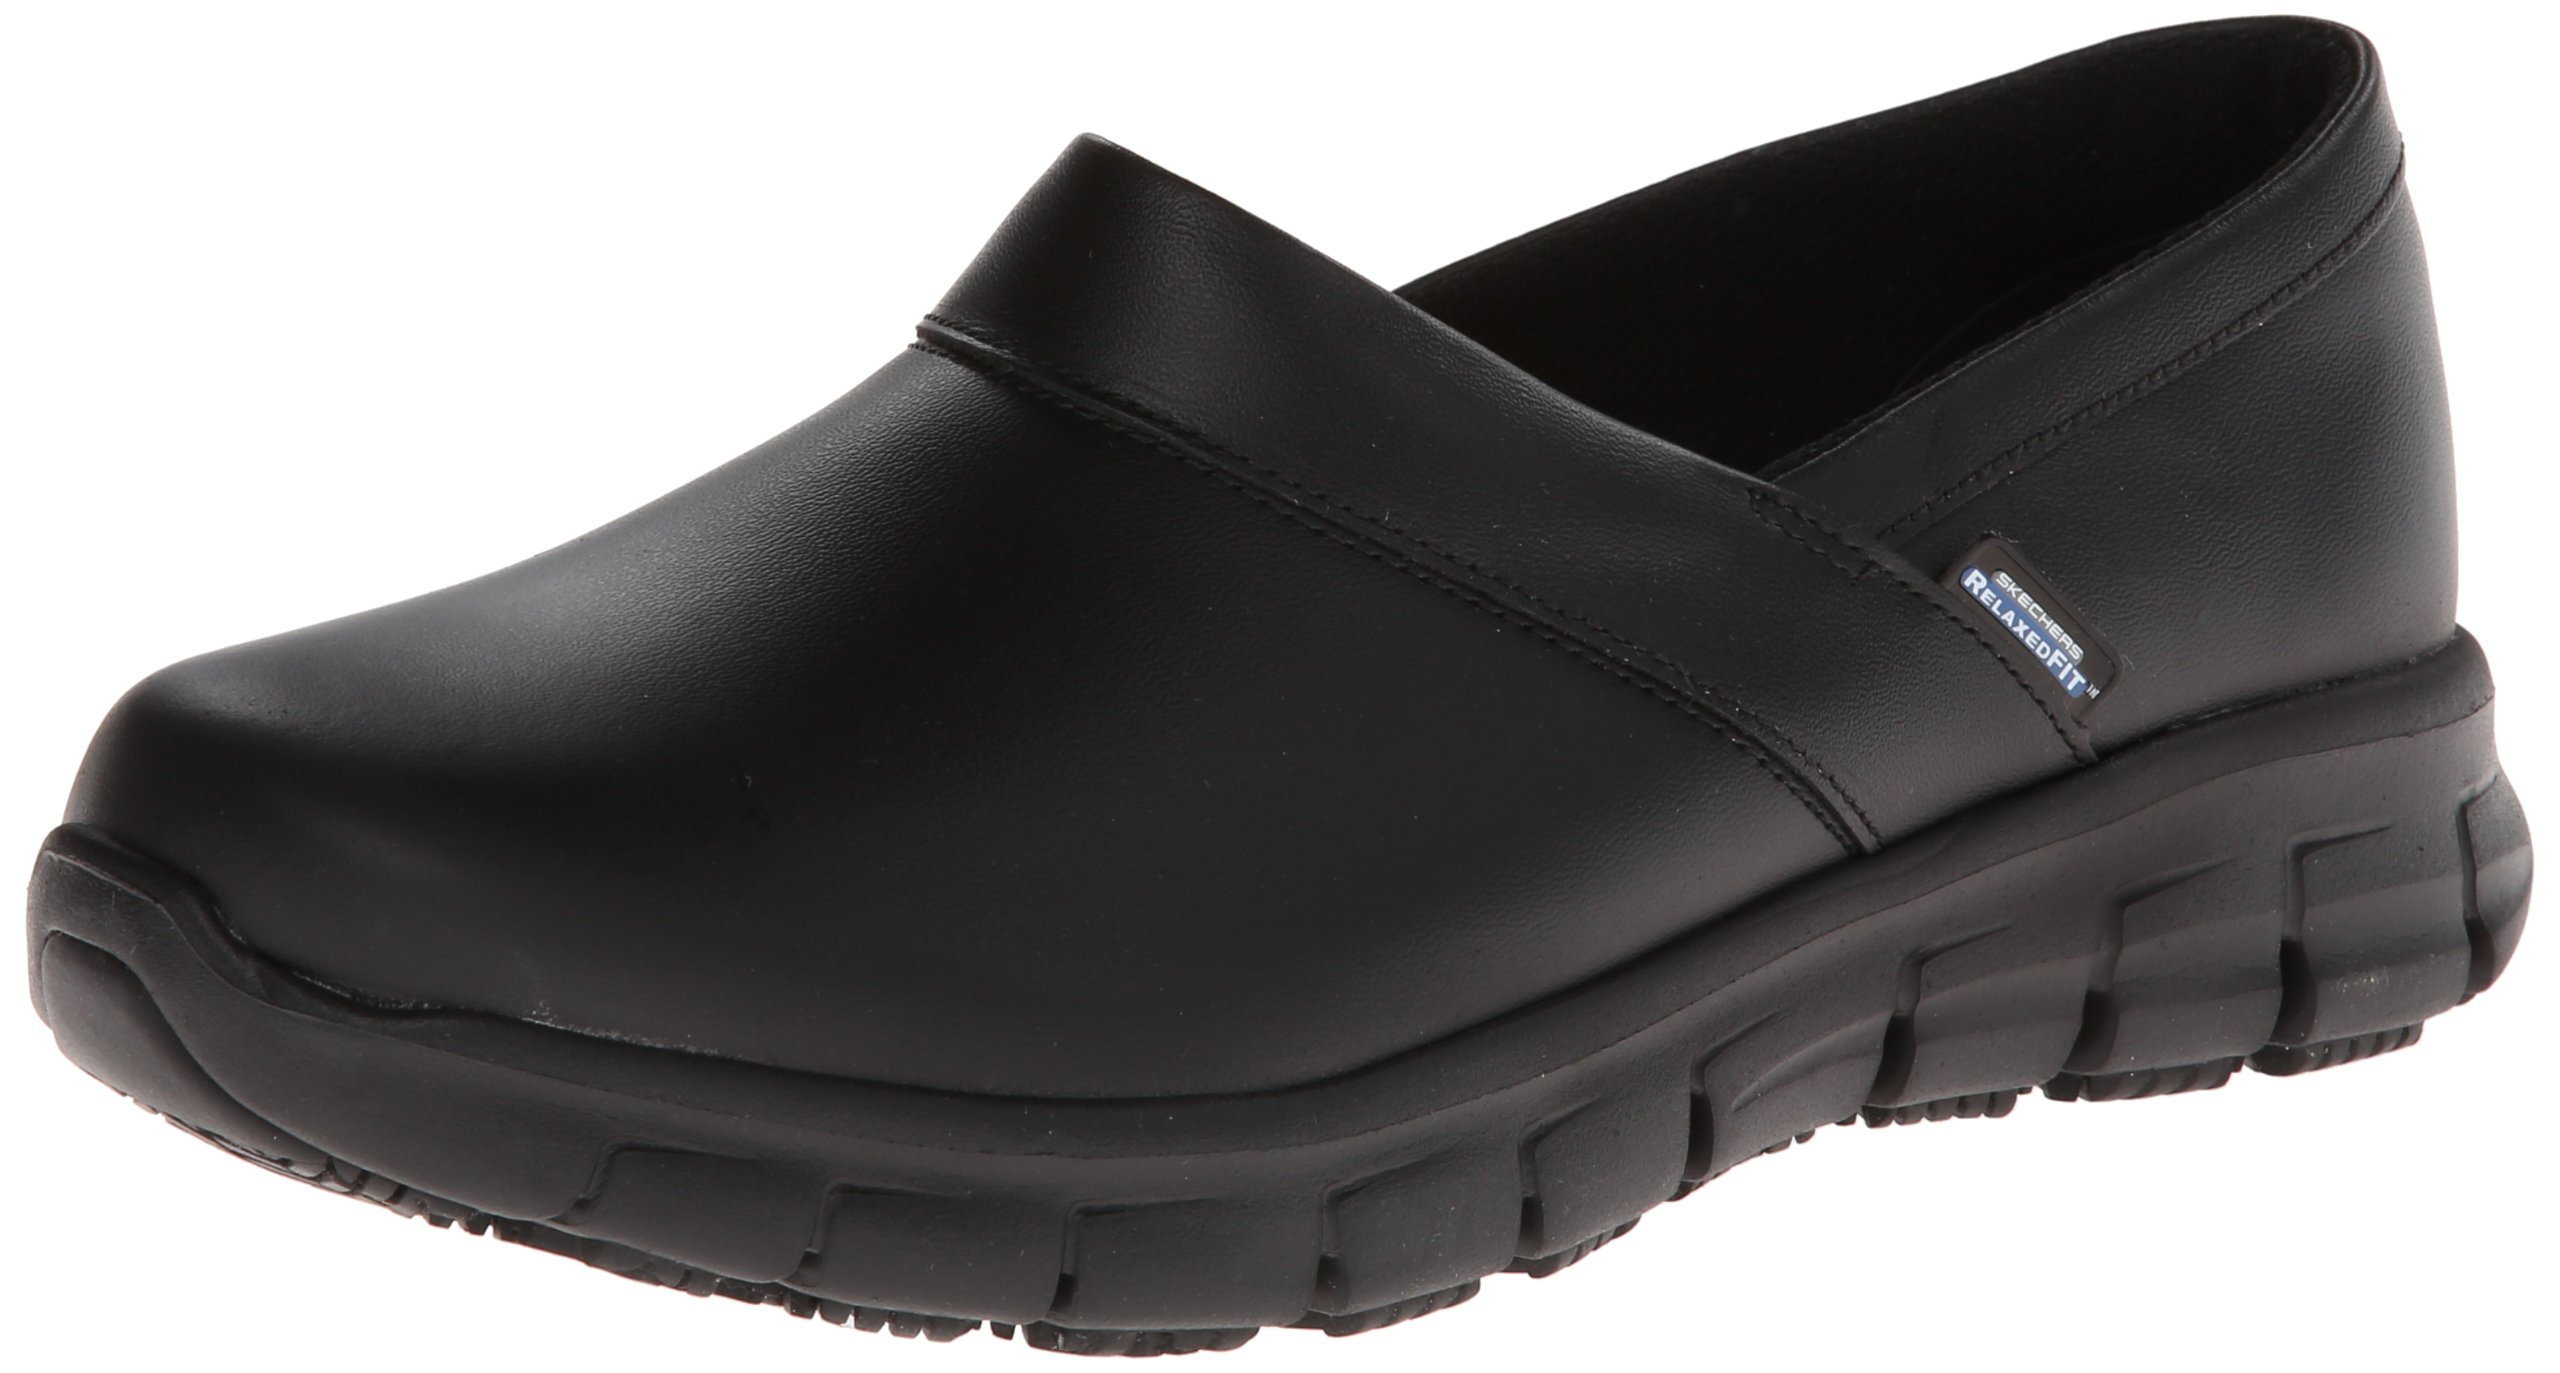 Skechers for Work Women's Relaxed Fit Slip Resistant Work Shoe, Black, 5.5 M US